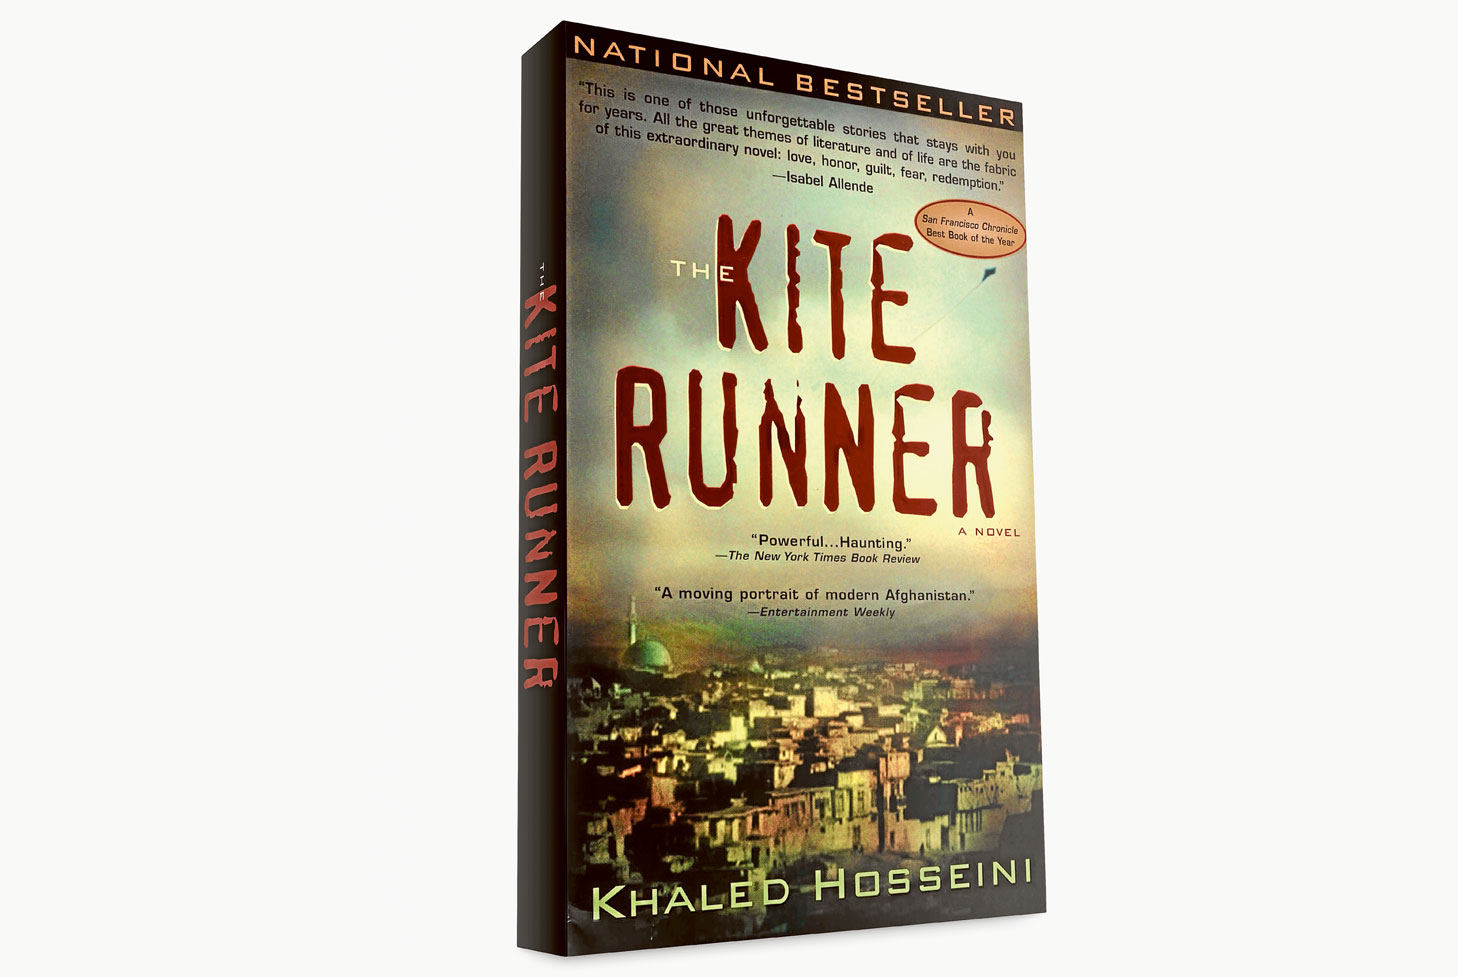 the kite runner 15 essay The kite runner by khaled hosseini  finally succeeds by winning a kite-flying competition  on jan 15 2009 at 3:55 pm great review.